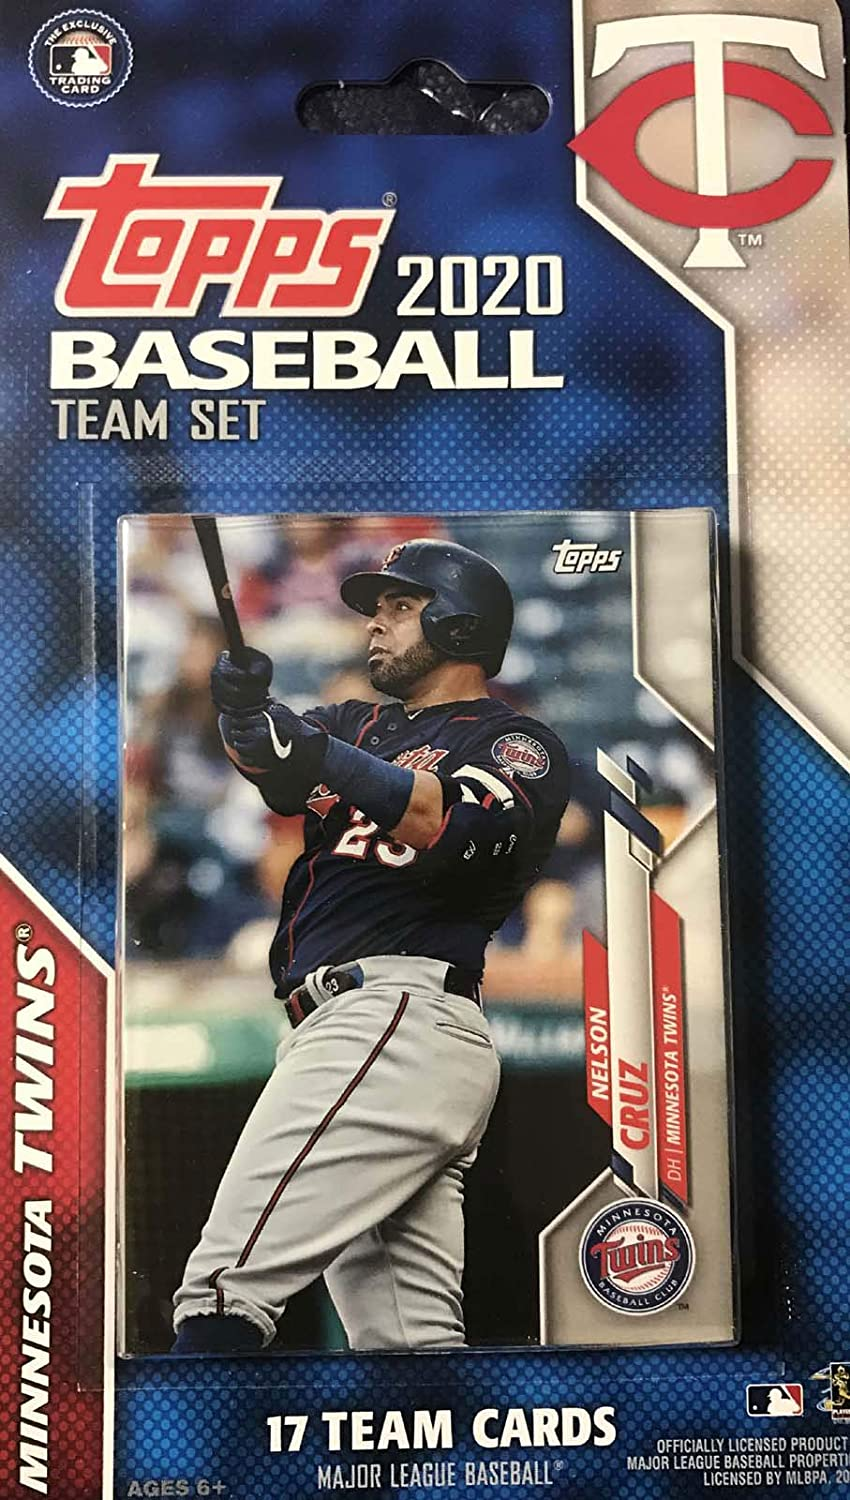 Factory Sealed Team Set Minnesota Twins 2020 Topps Sellado de fábrica Edición Especial 17 Juego de Cartas con José Berrios y Nelson Cruz Plus: Amazon.es: Deportes y aire libre